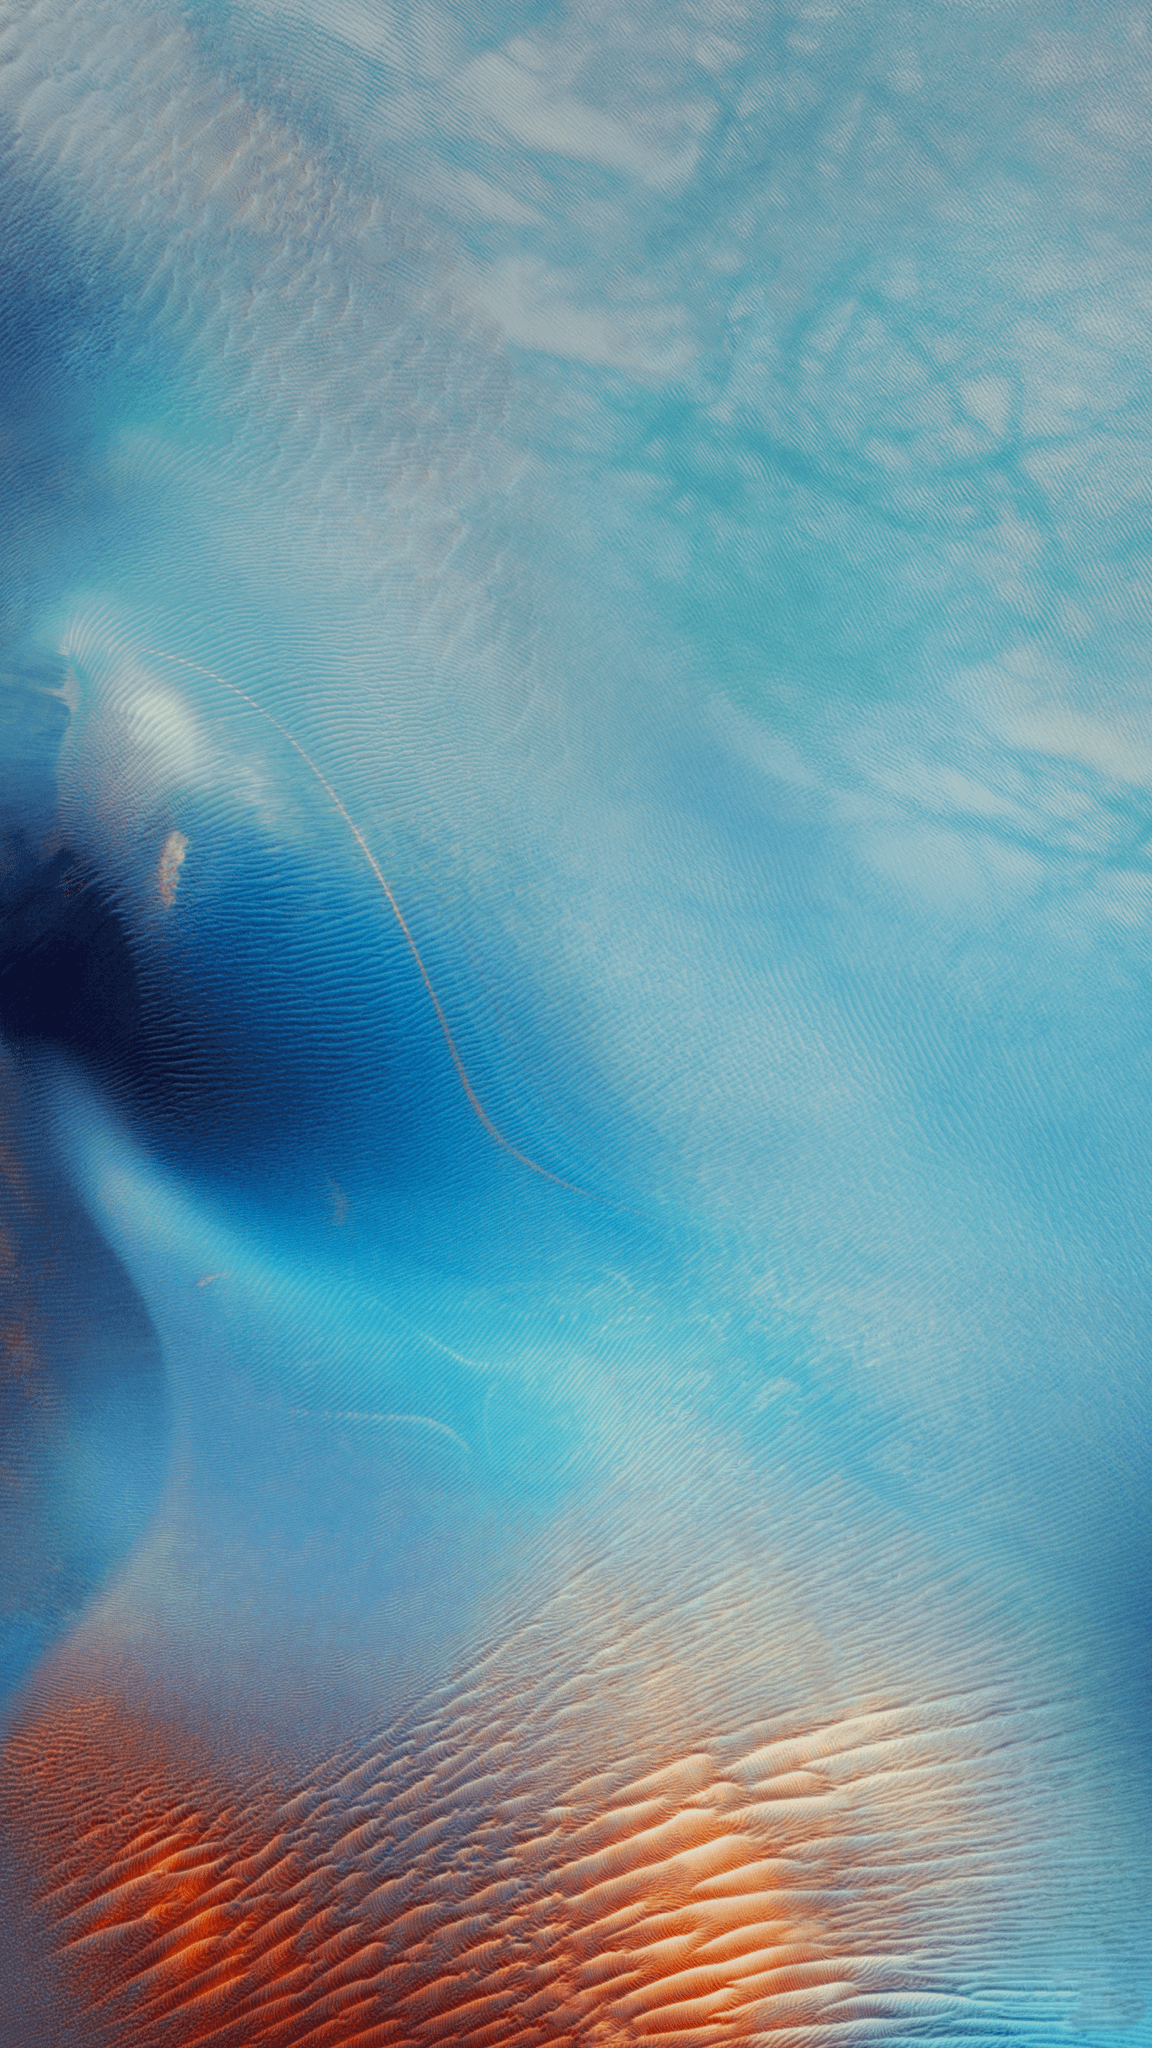 Download Now: The iOS 9 Wallpapers